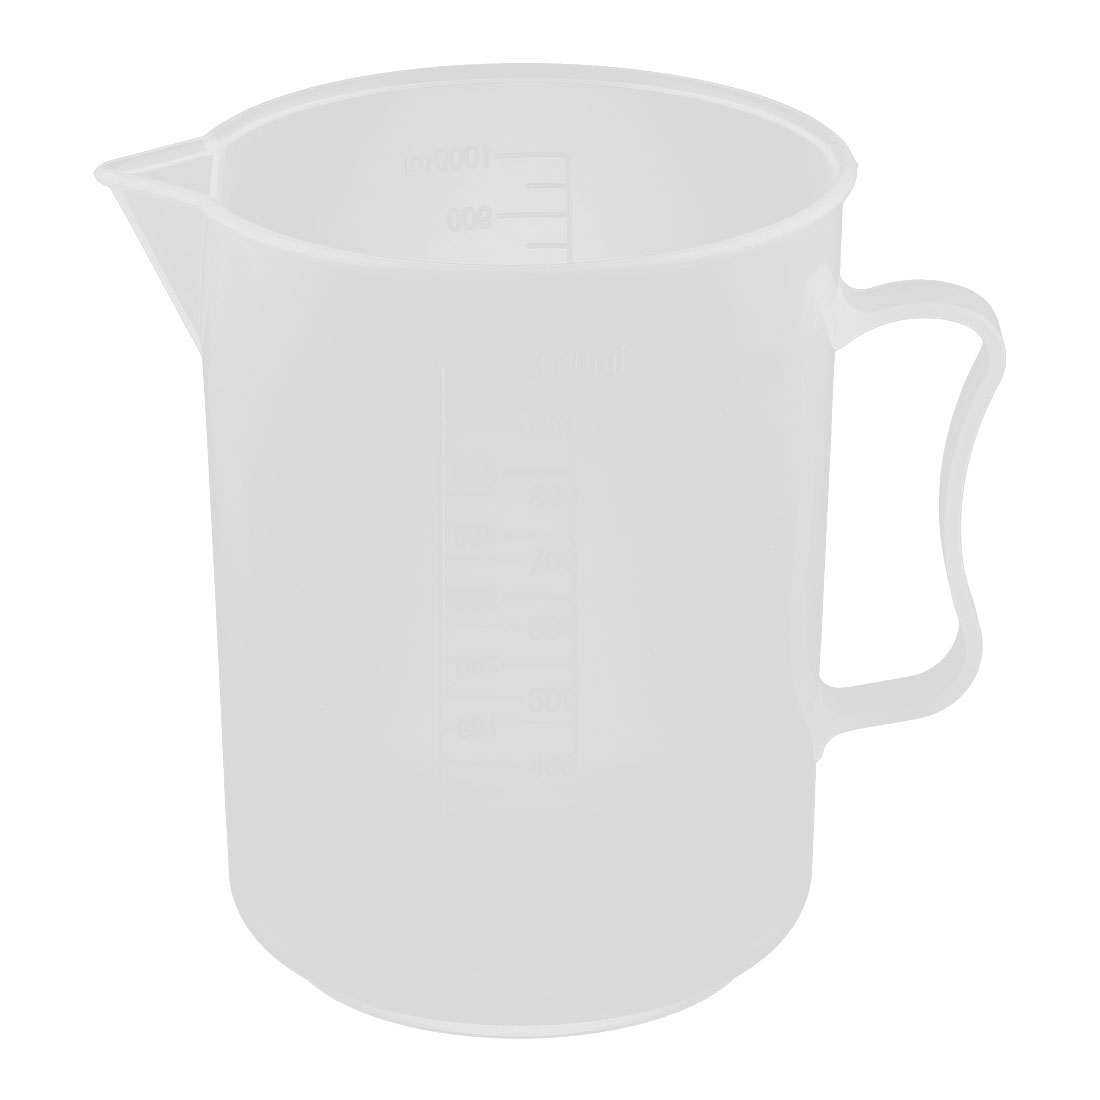 Laboratory Plastic Water Liquid Graduated Measuring Cup Clear White 1000ml by Unique-Bargains